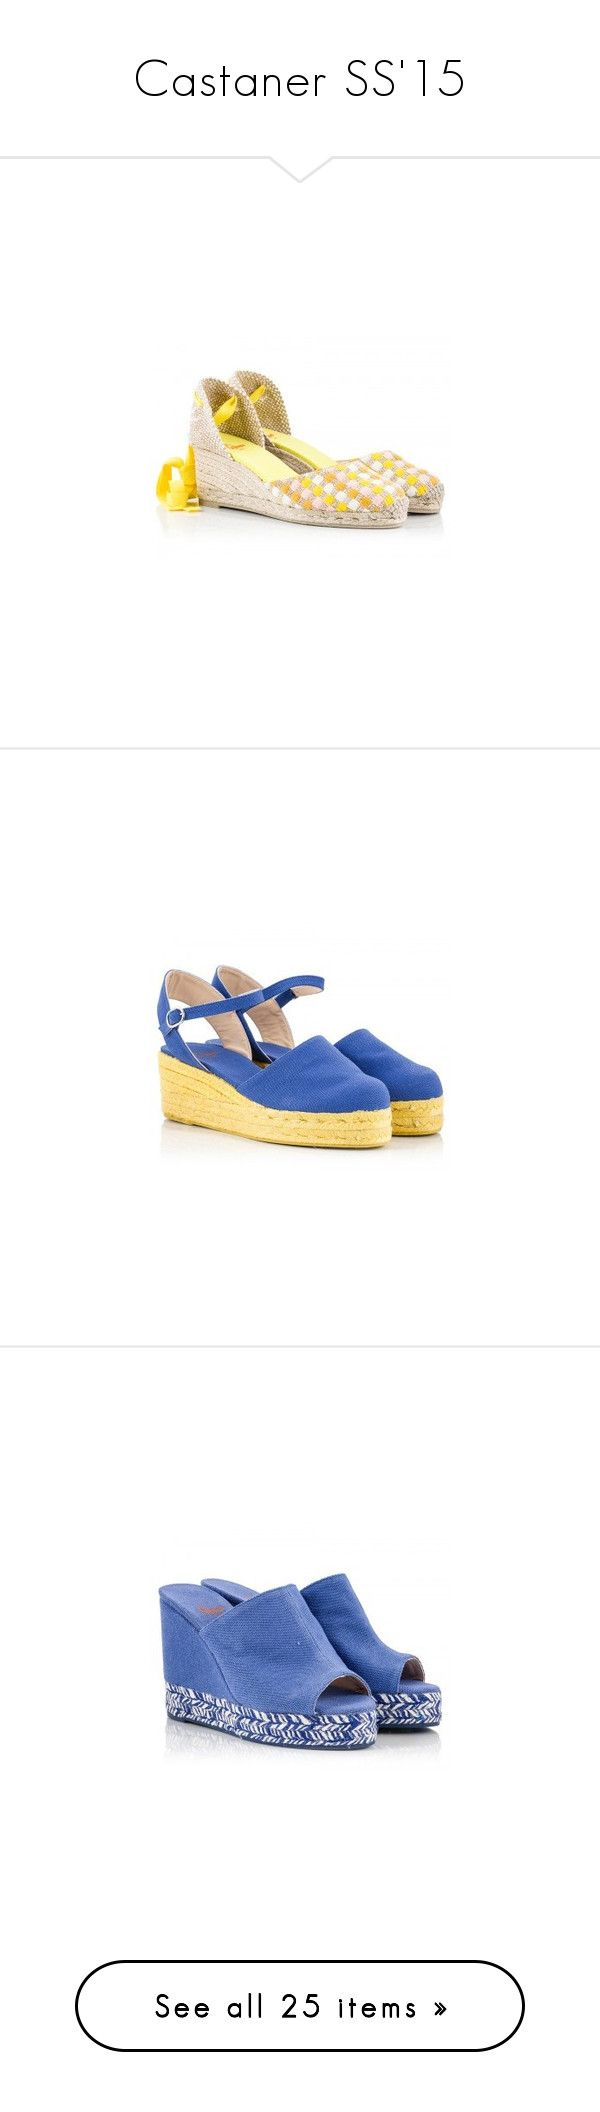 """Castaner SS'15"" by fratellikarida-com ❤ liked on Polyvore featuring Madewell, Castañer, shoes, sandals, espadrilles, woven wedge sandals, multi color sandals, espadrille wedge sandals, multi color wedge sandals and woven sandals"